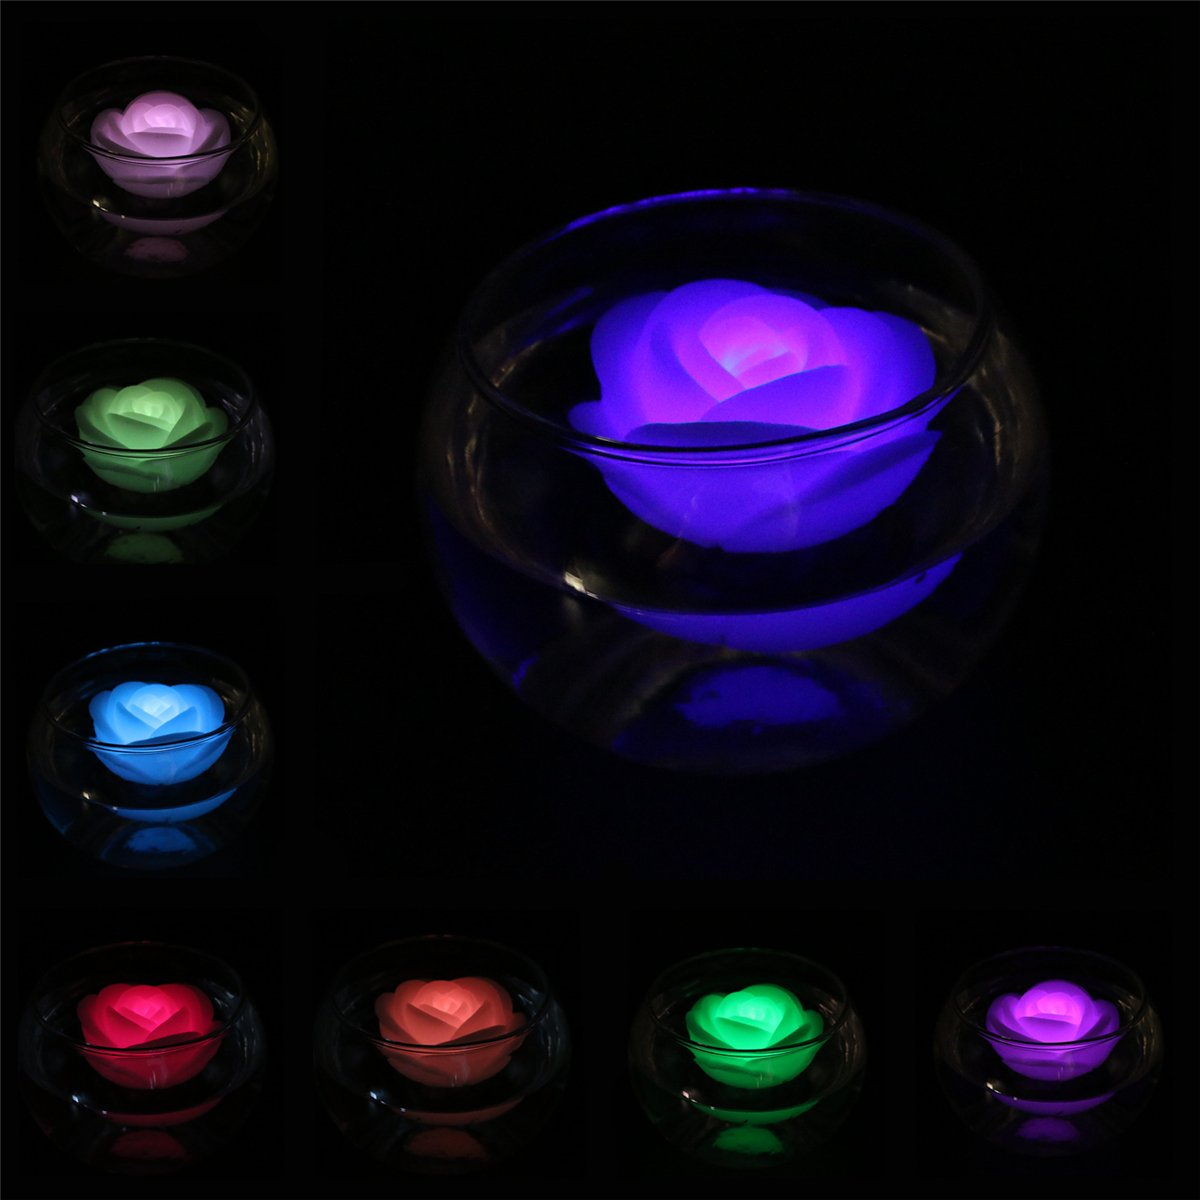 Rose-shape Wax Waterproof Floating Candles Tealight Night Light Flameless Candle with Battery-powered for Wedding Party Decoration ARDUX LED Floating Candles Pack of 4, Multicolor